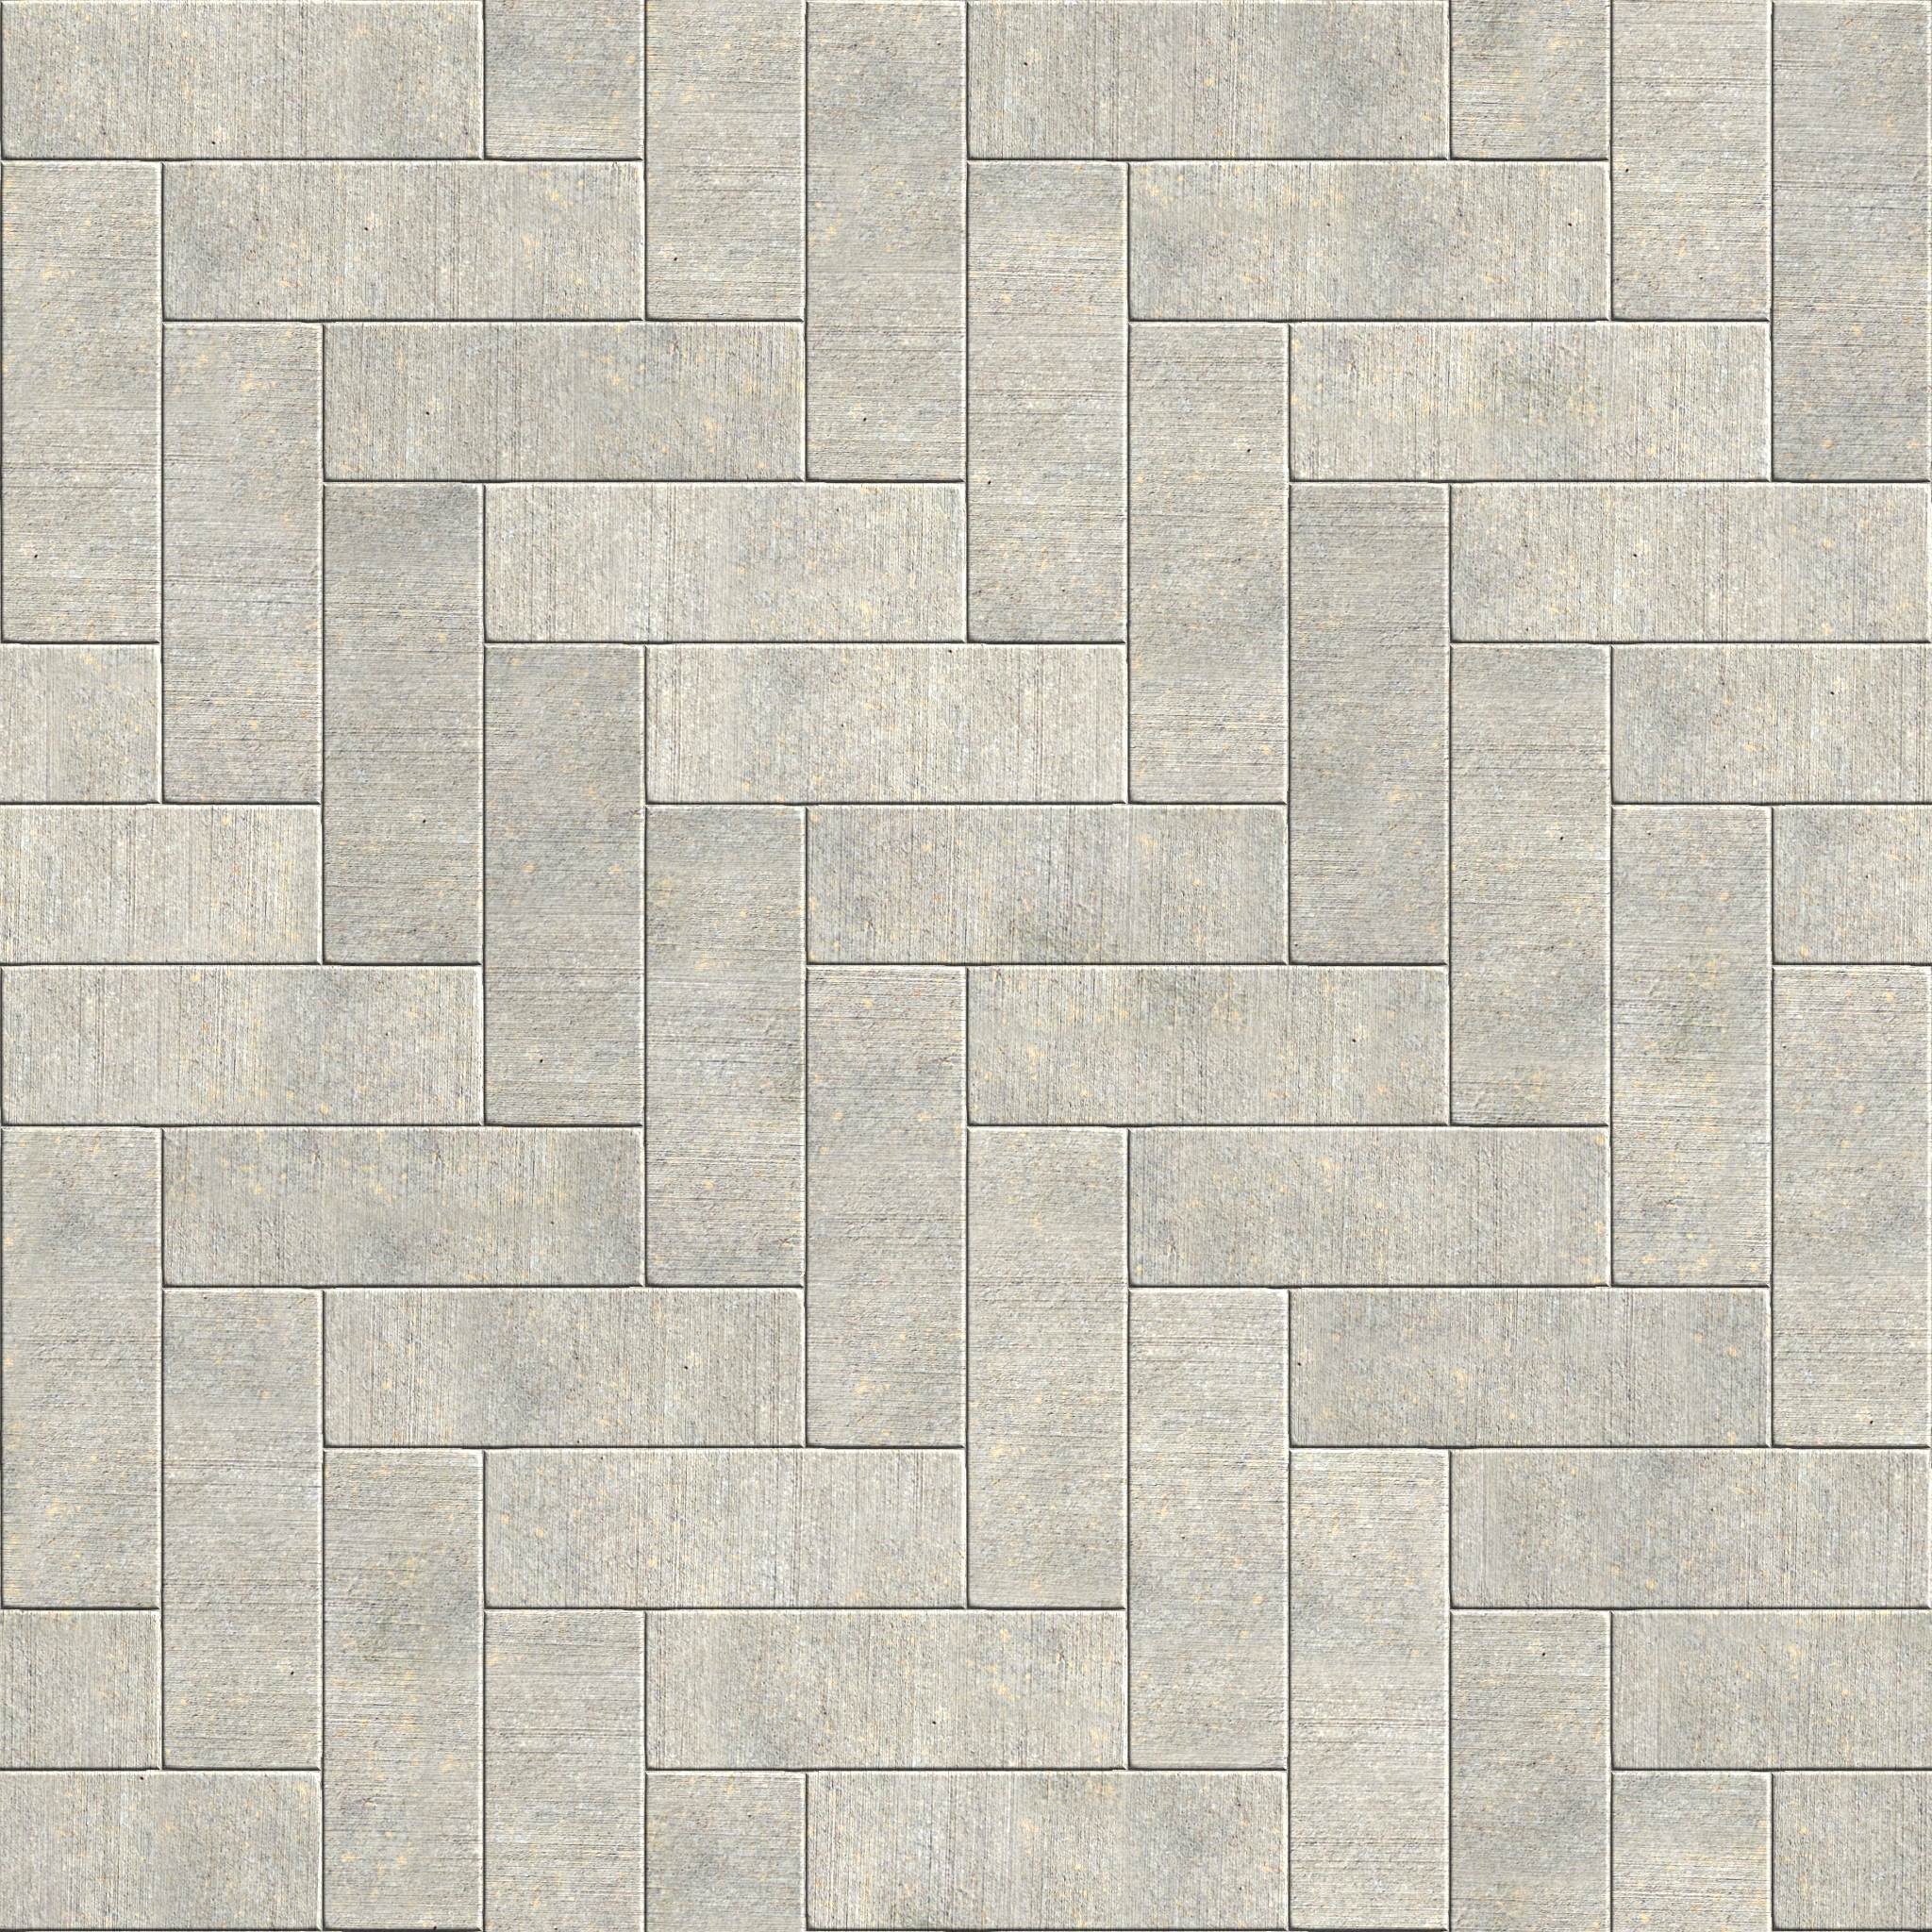 concrete_tiles_herring_2048.jpg